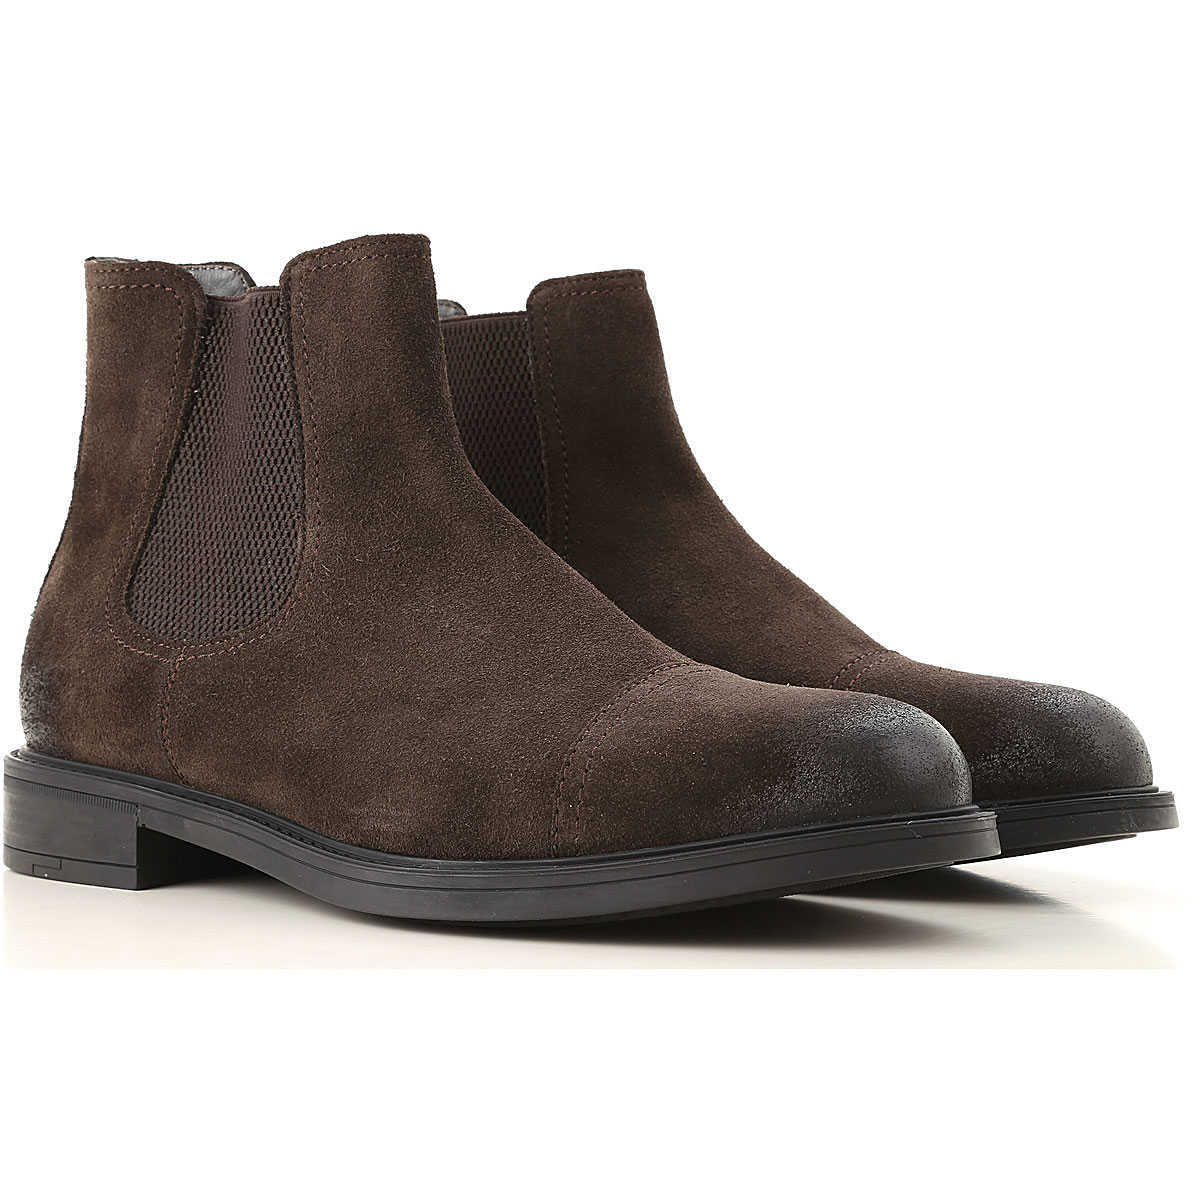 Moreschi Boots for Men Booties On Sale Canada - GOOFASH - Mens BOOTS